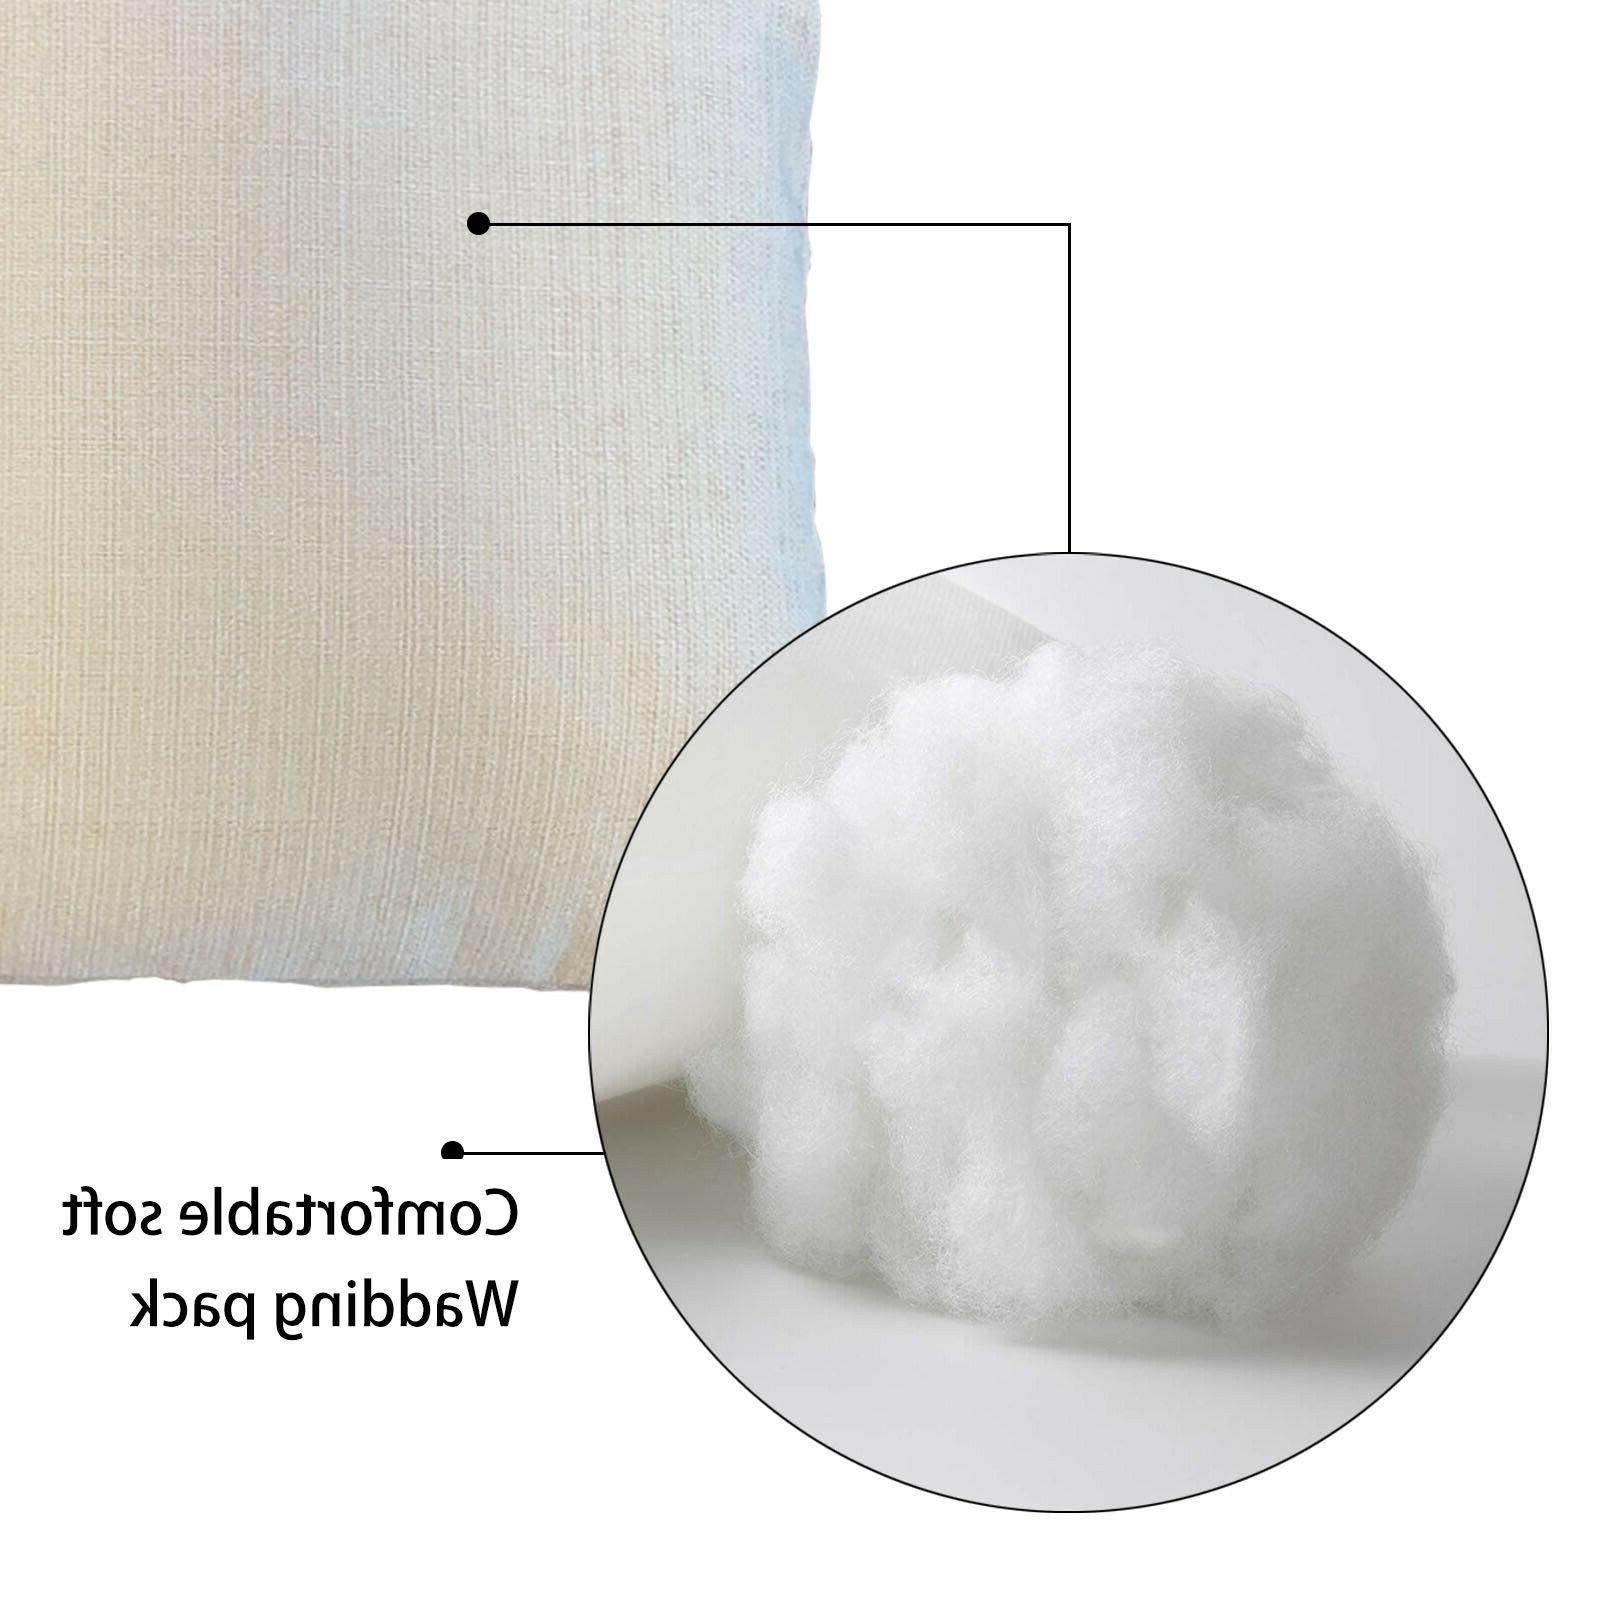 Pack Pillows Bed Couch Pillows Home Decor Pillows